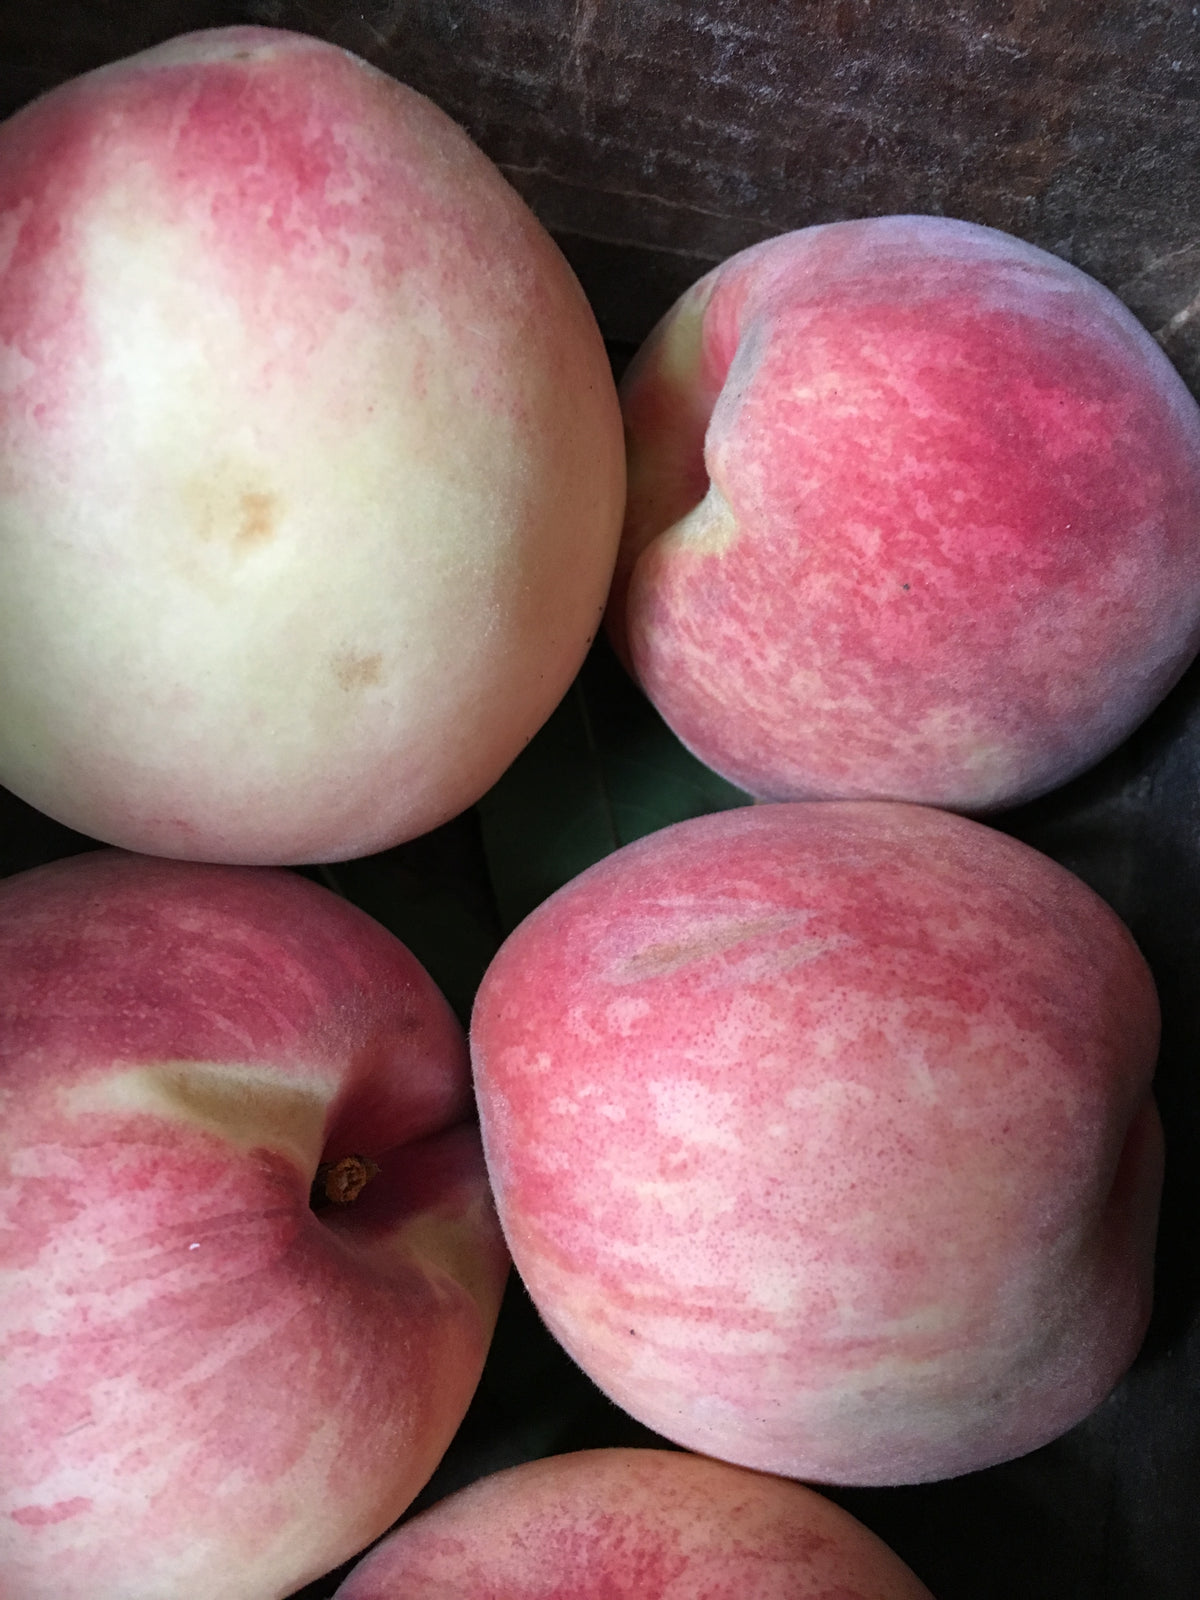 St Agatha Tiffany Rose White Flesh Peach (12/13lbs)